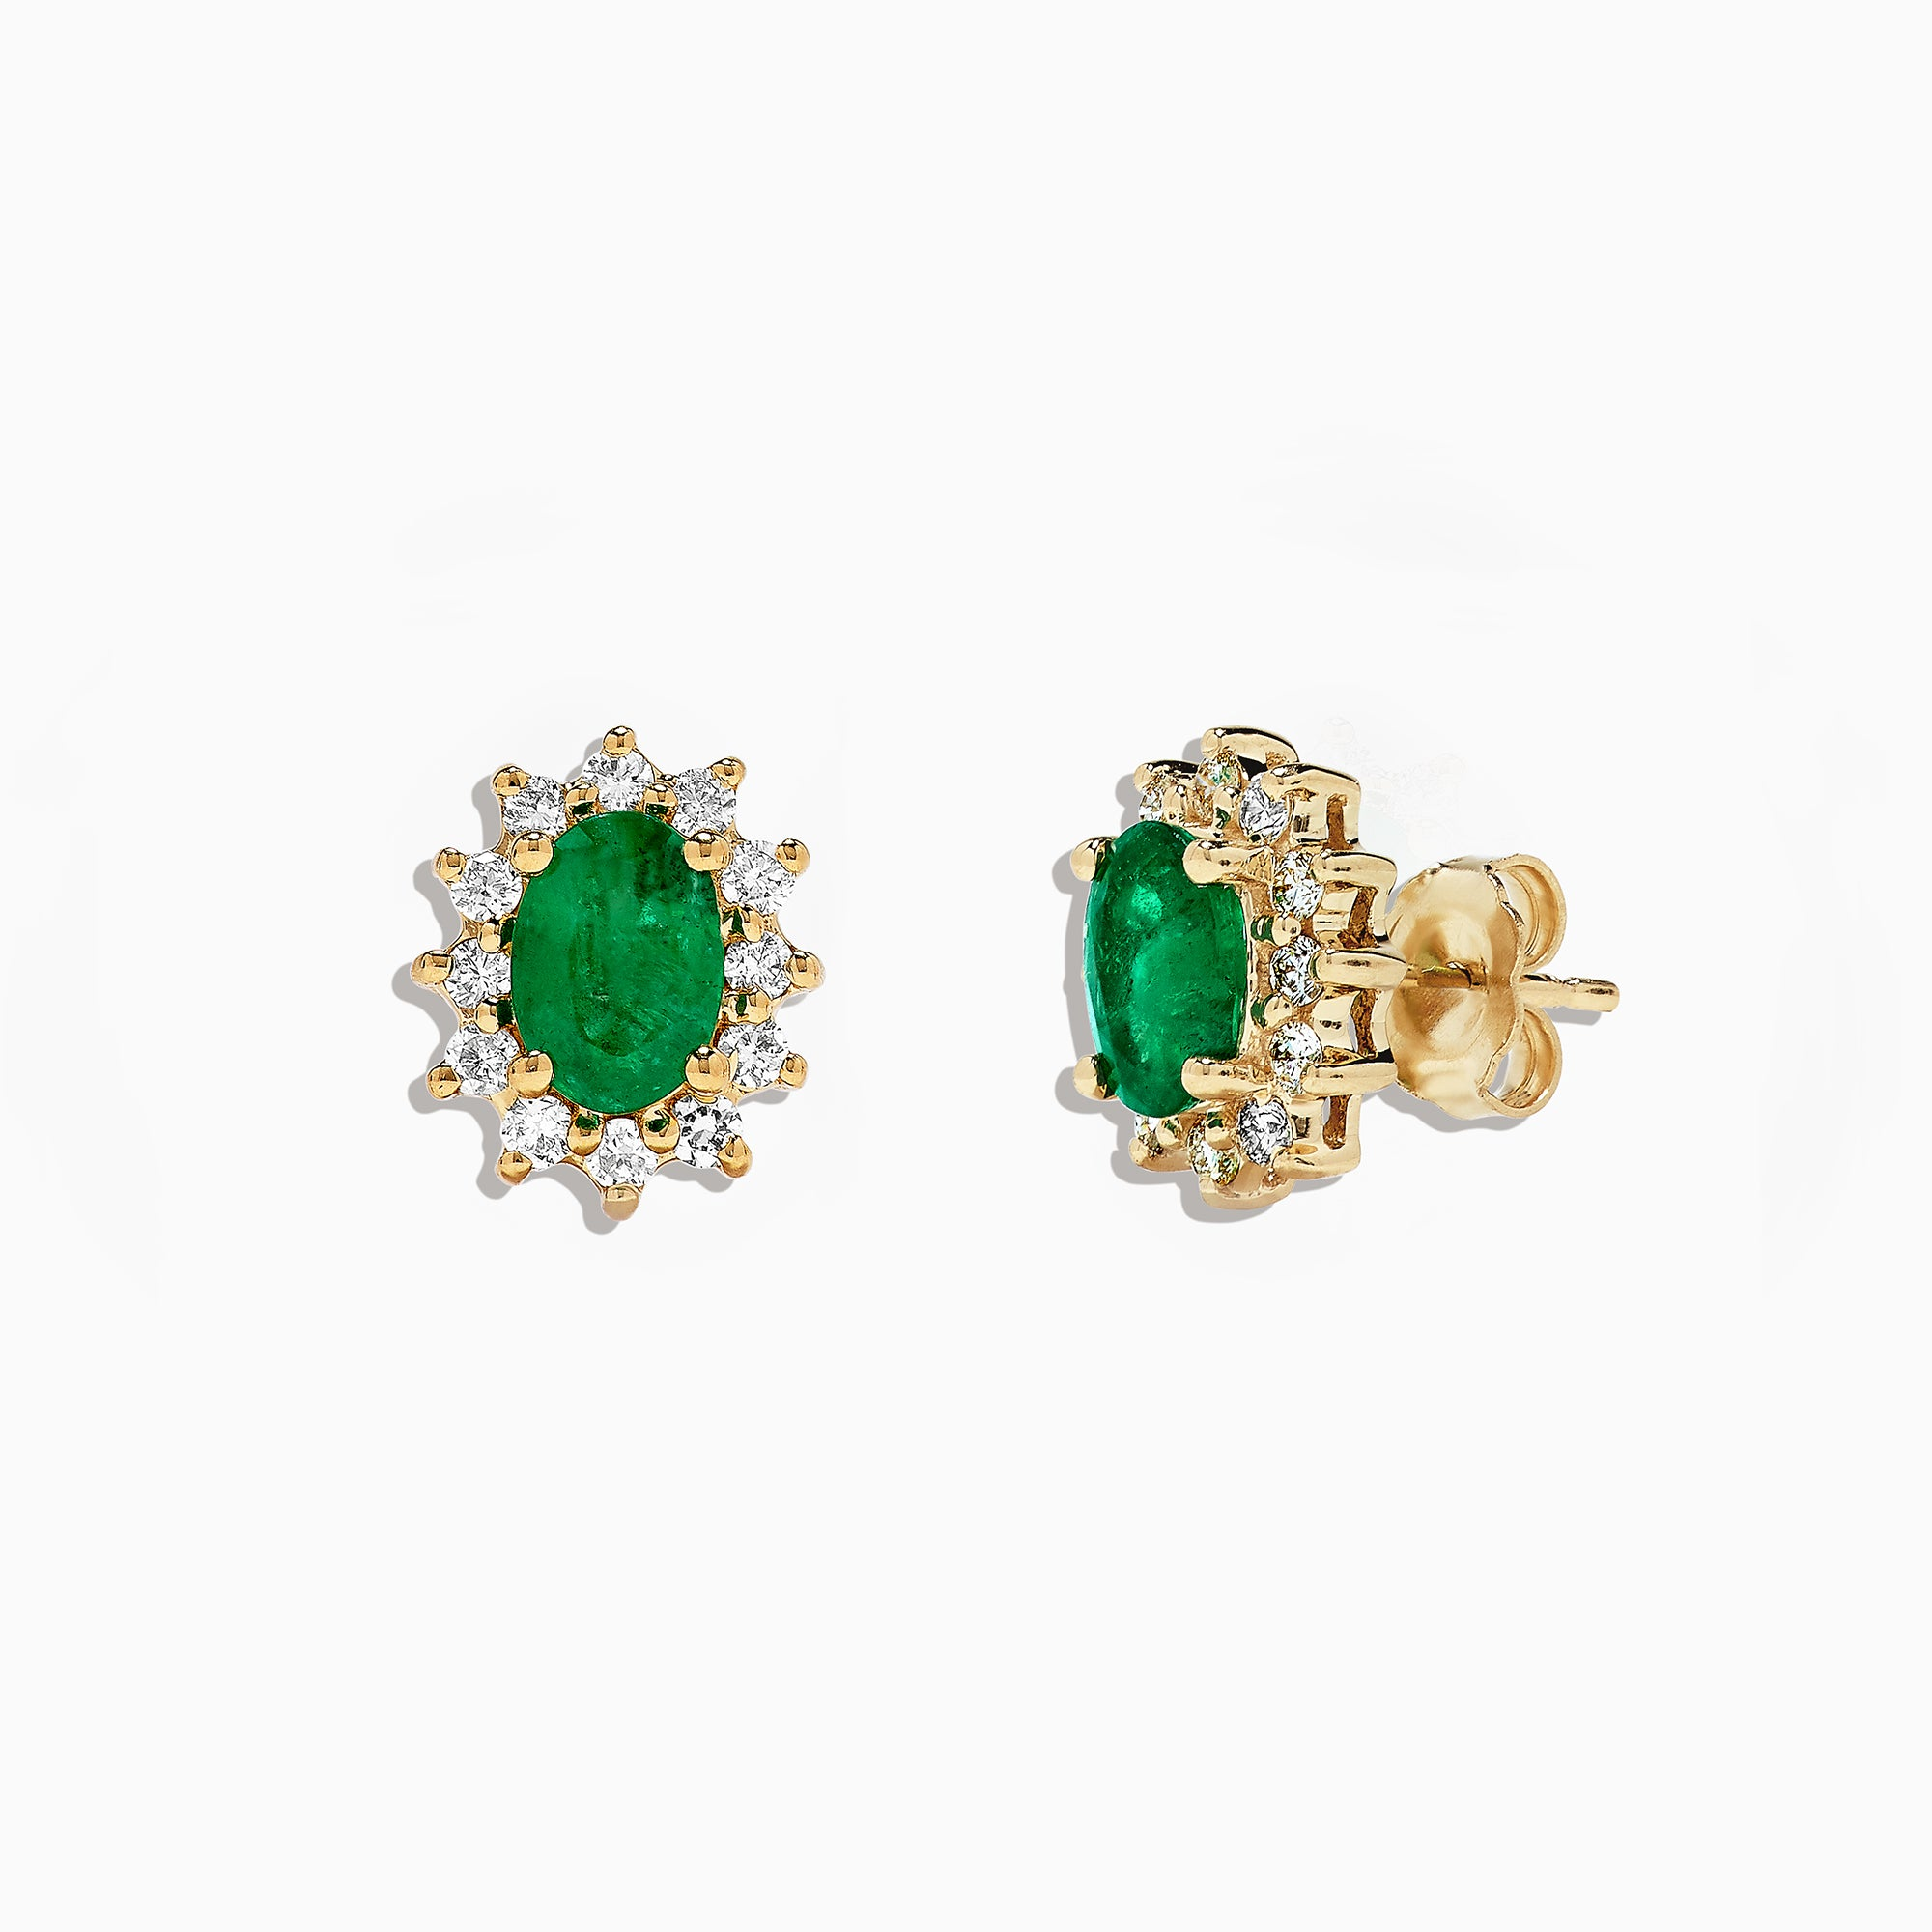 Effy Brasilica 14K Yellow Gold Emerald and Diamond Stud Earrings, 1.99 TCW